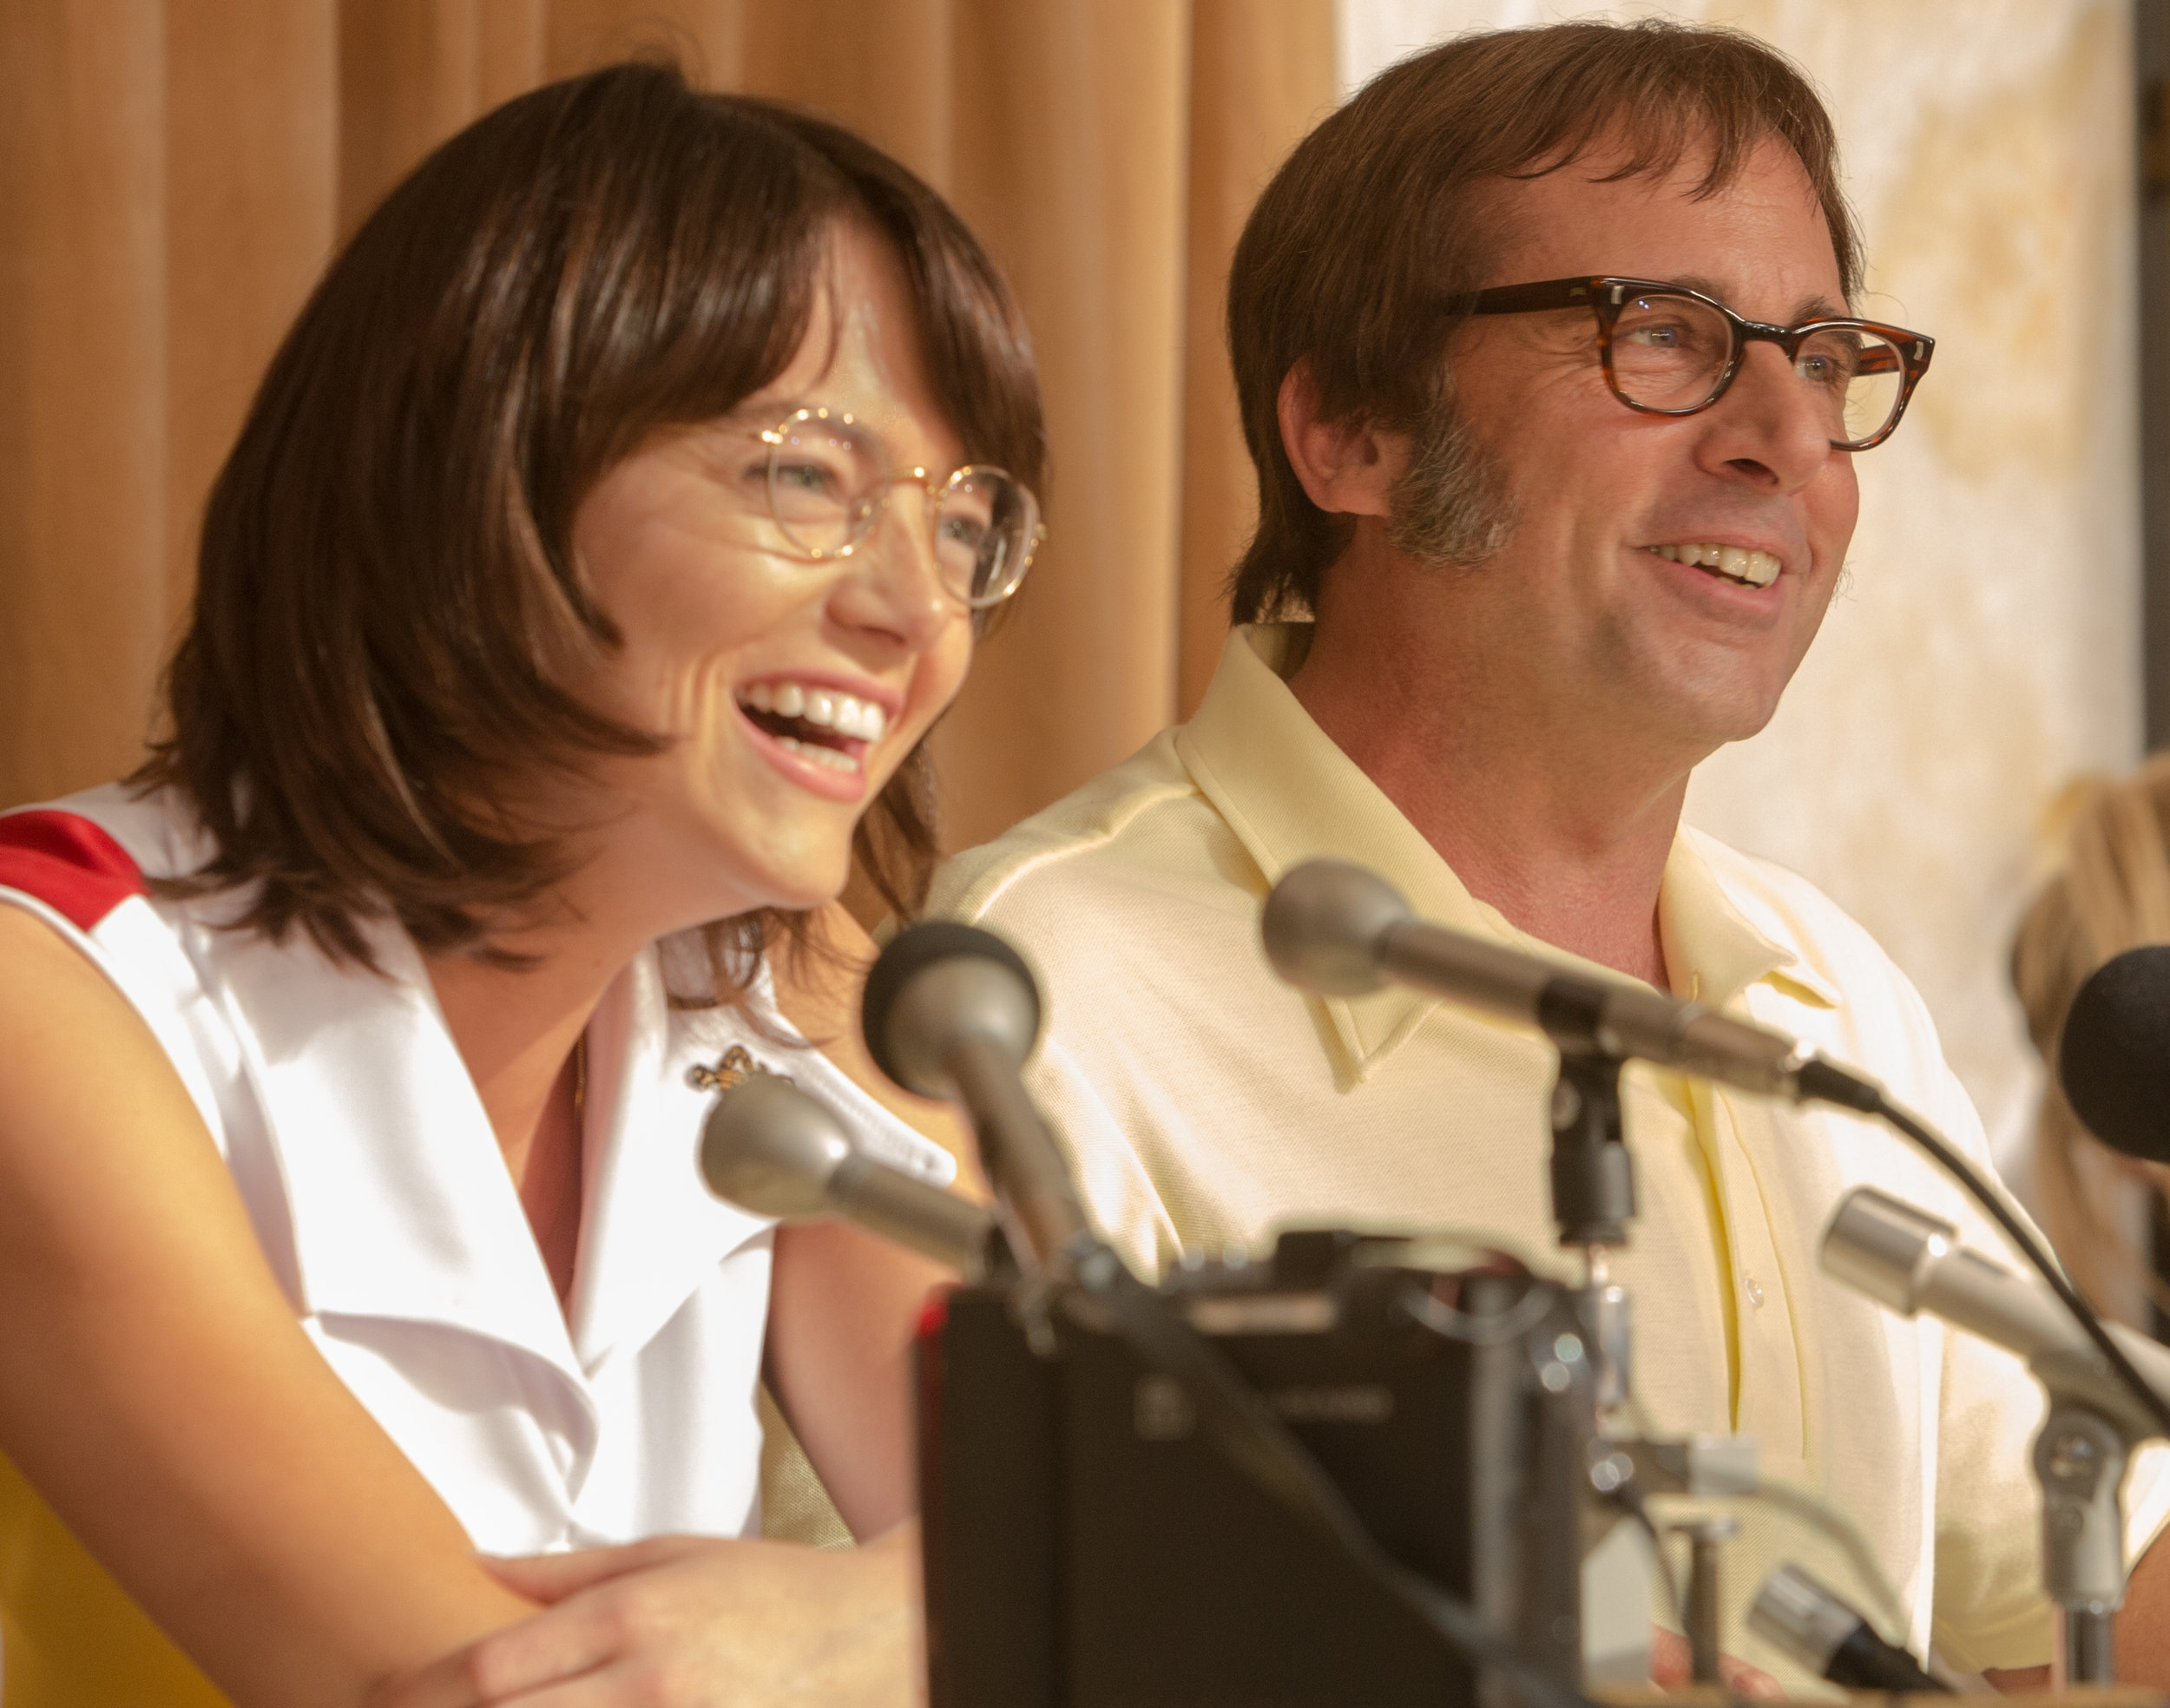 Emma Stone as Billie Jean King and Steve Carell as Bobby Riggs.